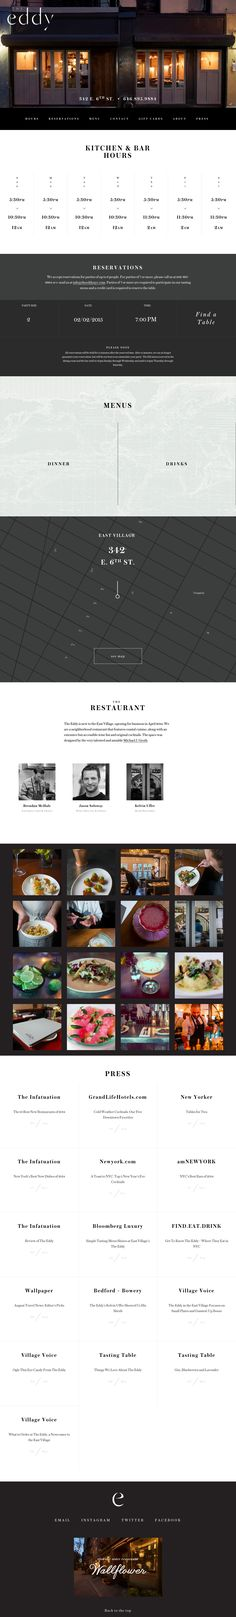 Lovely big layout in this responsive One Pager for 'The Eddy NYC' restaurant. I really like their unique booking form and also the arrangement of their Press links - refreshing and consistent with the whole site design.